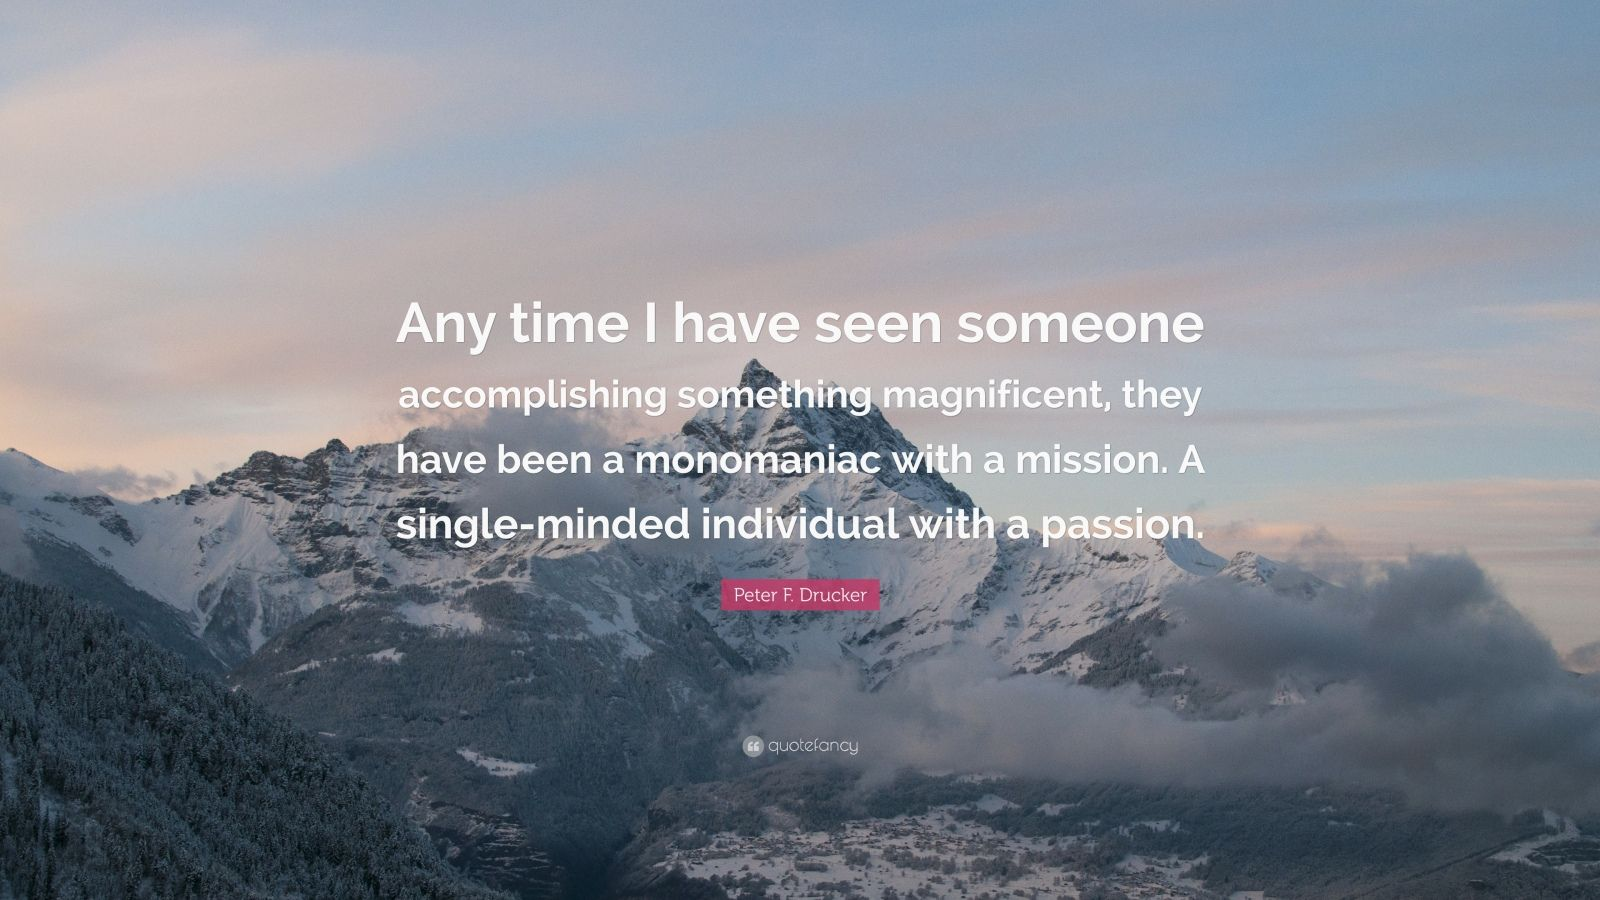 """Peter F. Drucker Quote: """"Any time I have seen someone accomplishing something magnificent, they have been a monomaniac with a mission. A single-minded individual with a passion."""""""